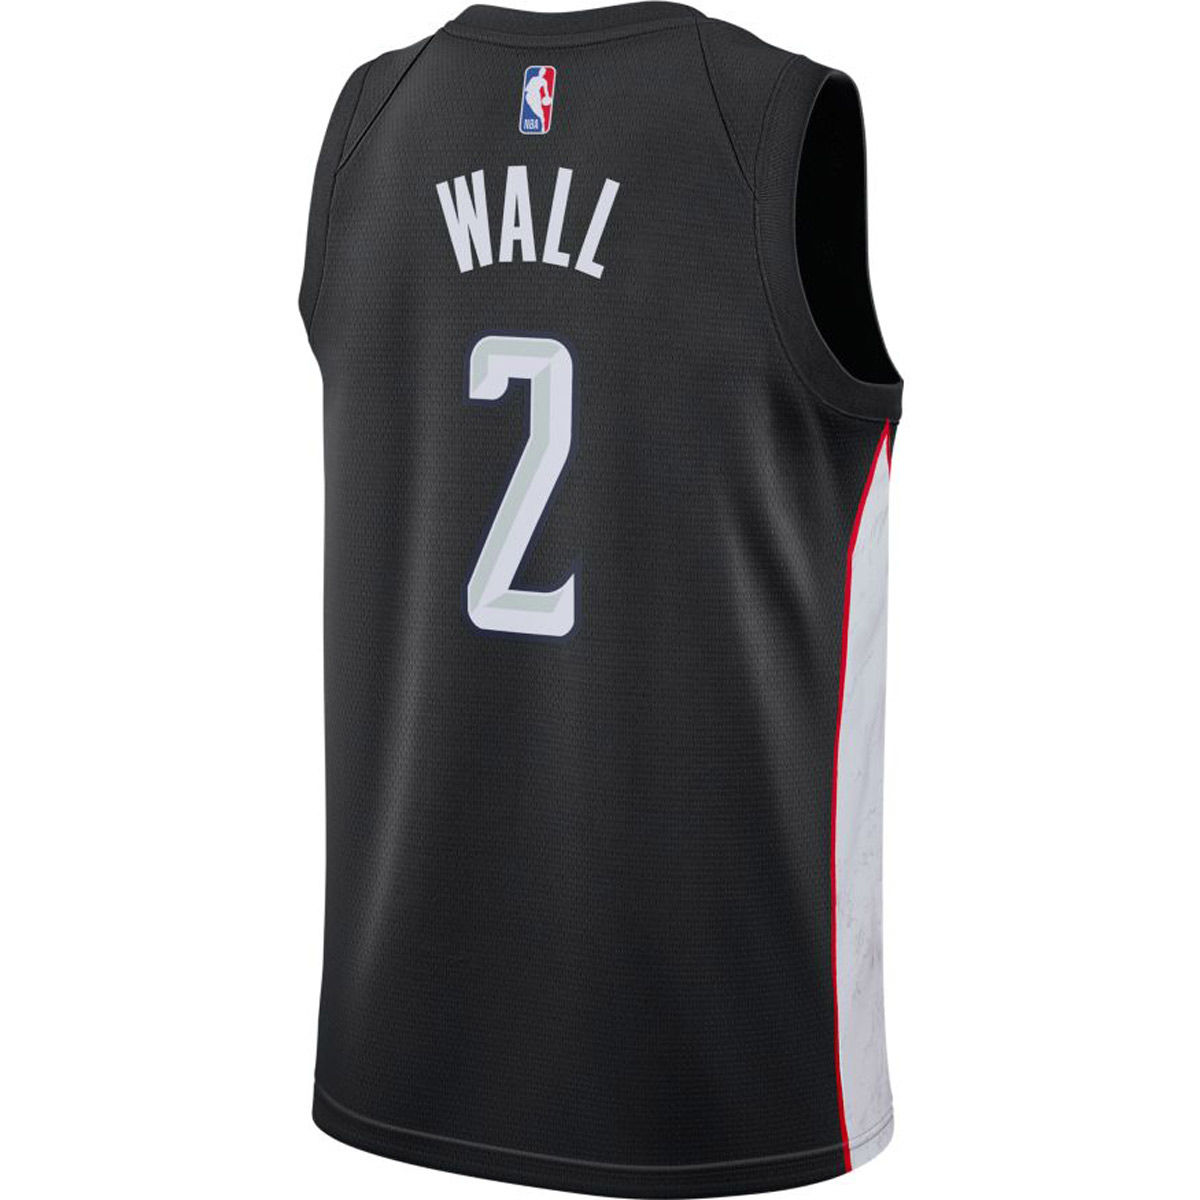 Washington Wizards Adult John Wall City Edition Jersey